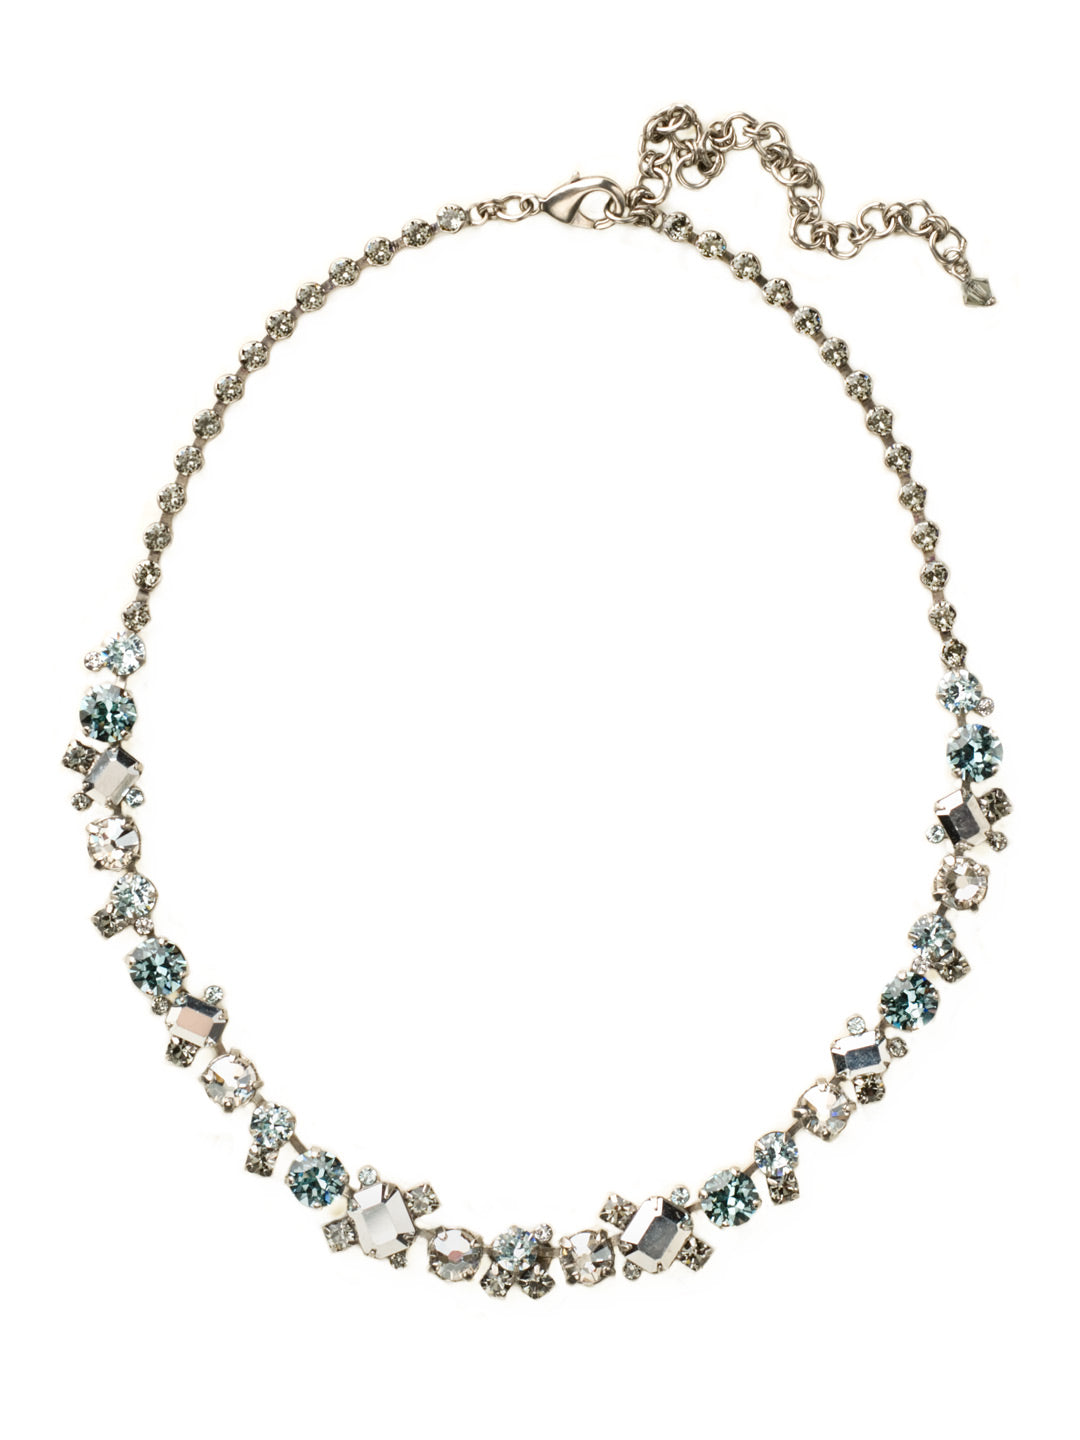 Glittering Multi-Cut Crystal Necklace - NCF6ASCRO